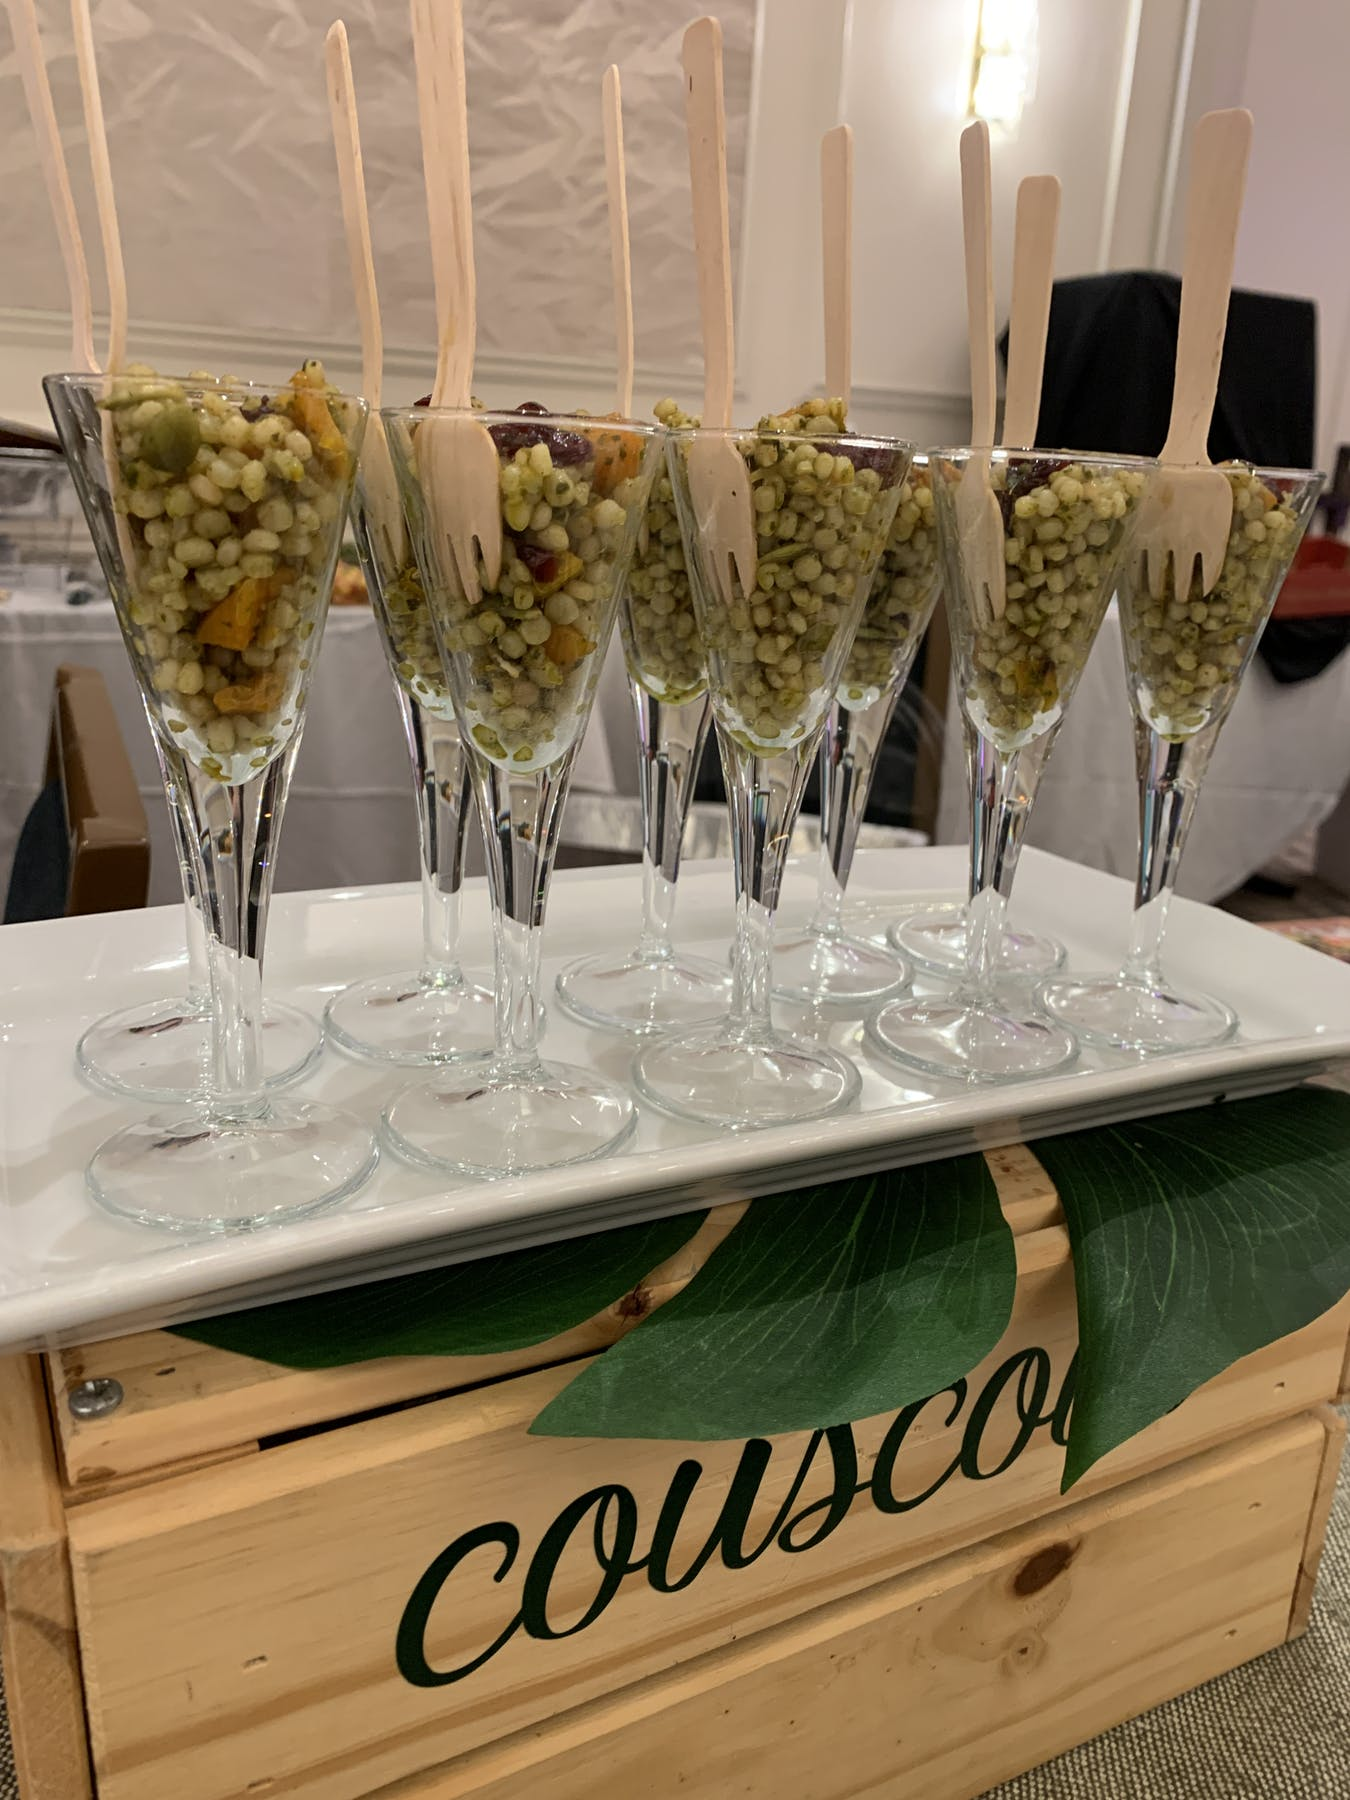 a row of wine glasses on a table